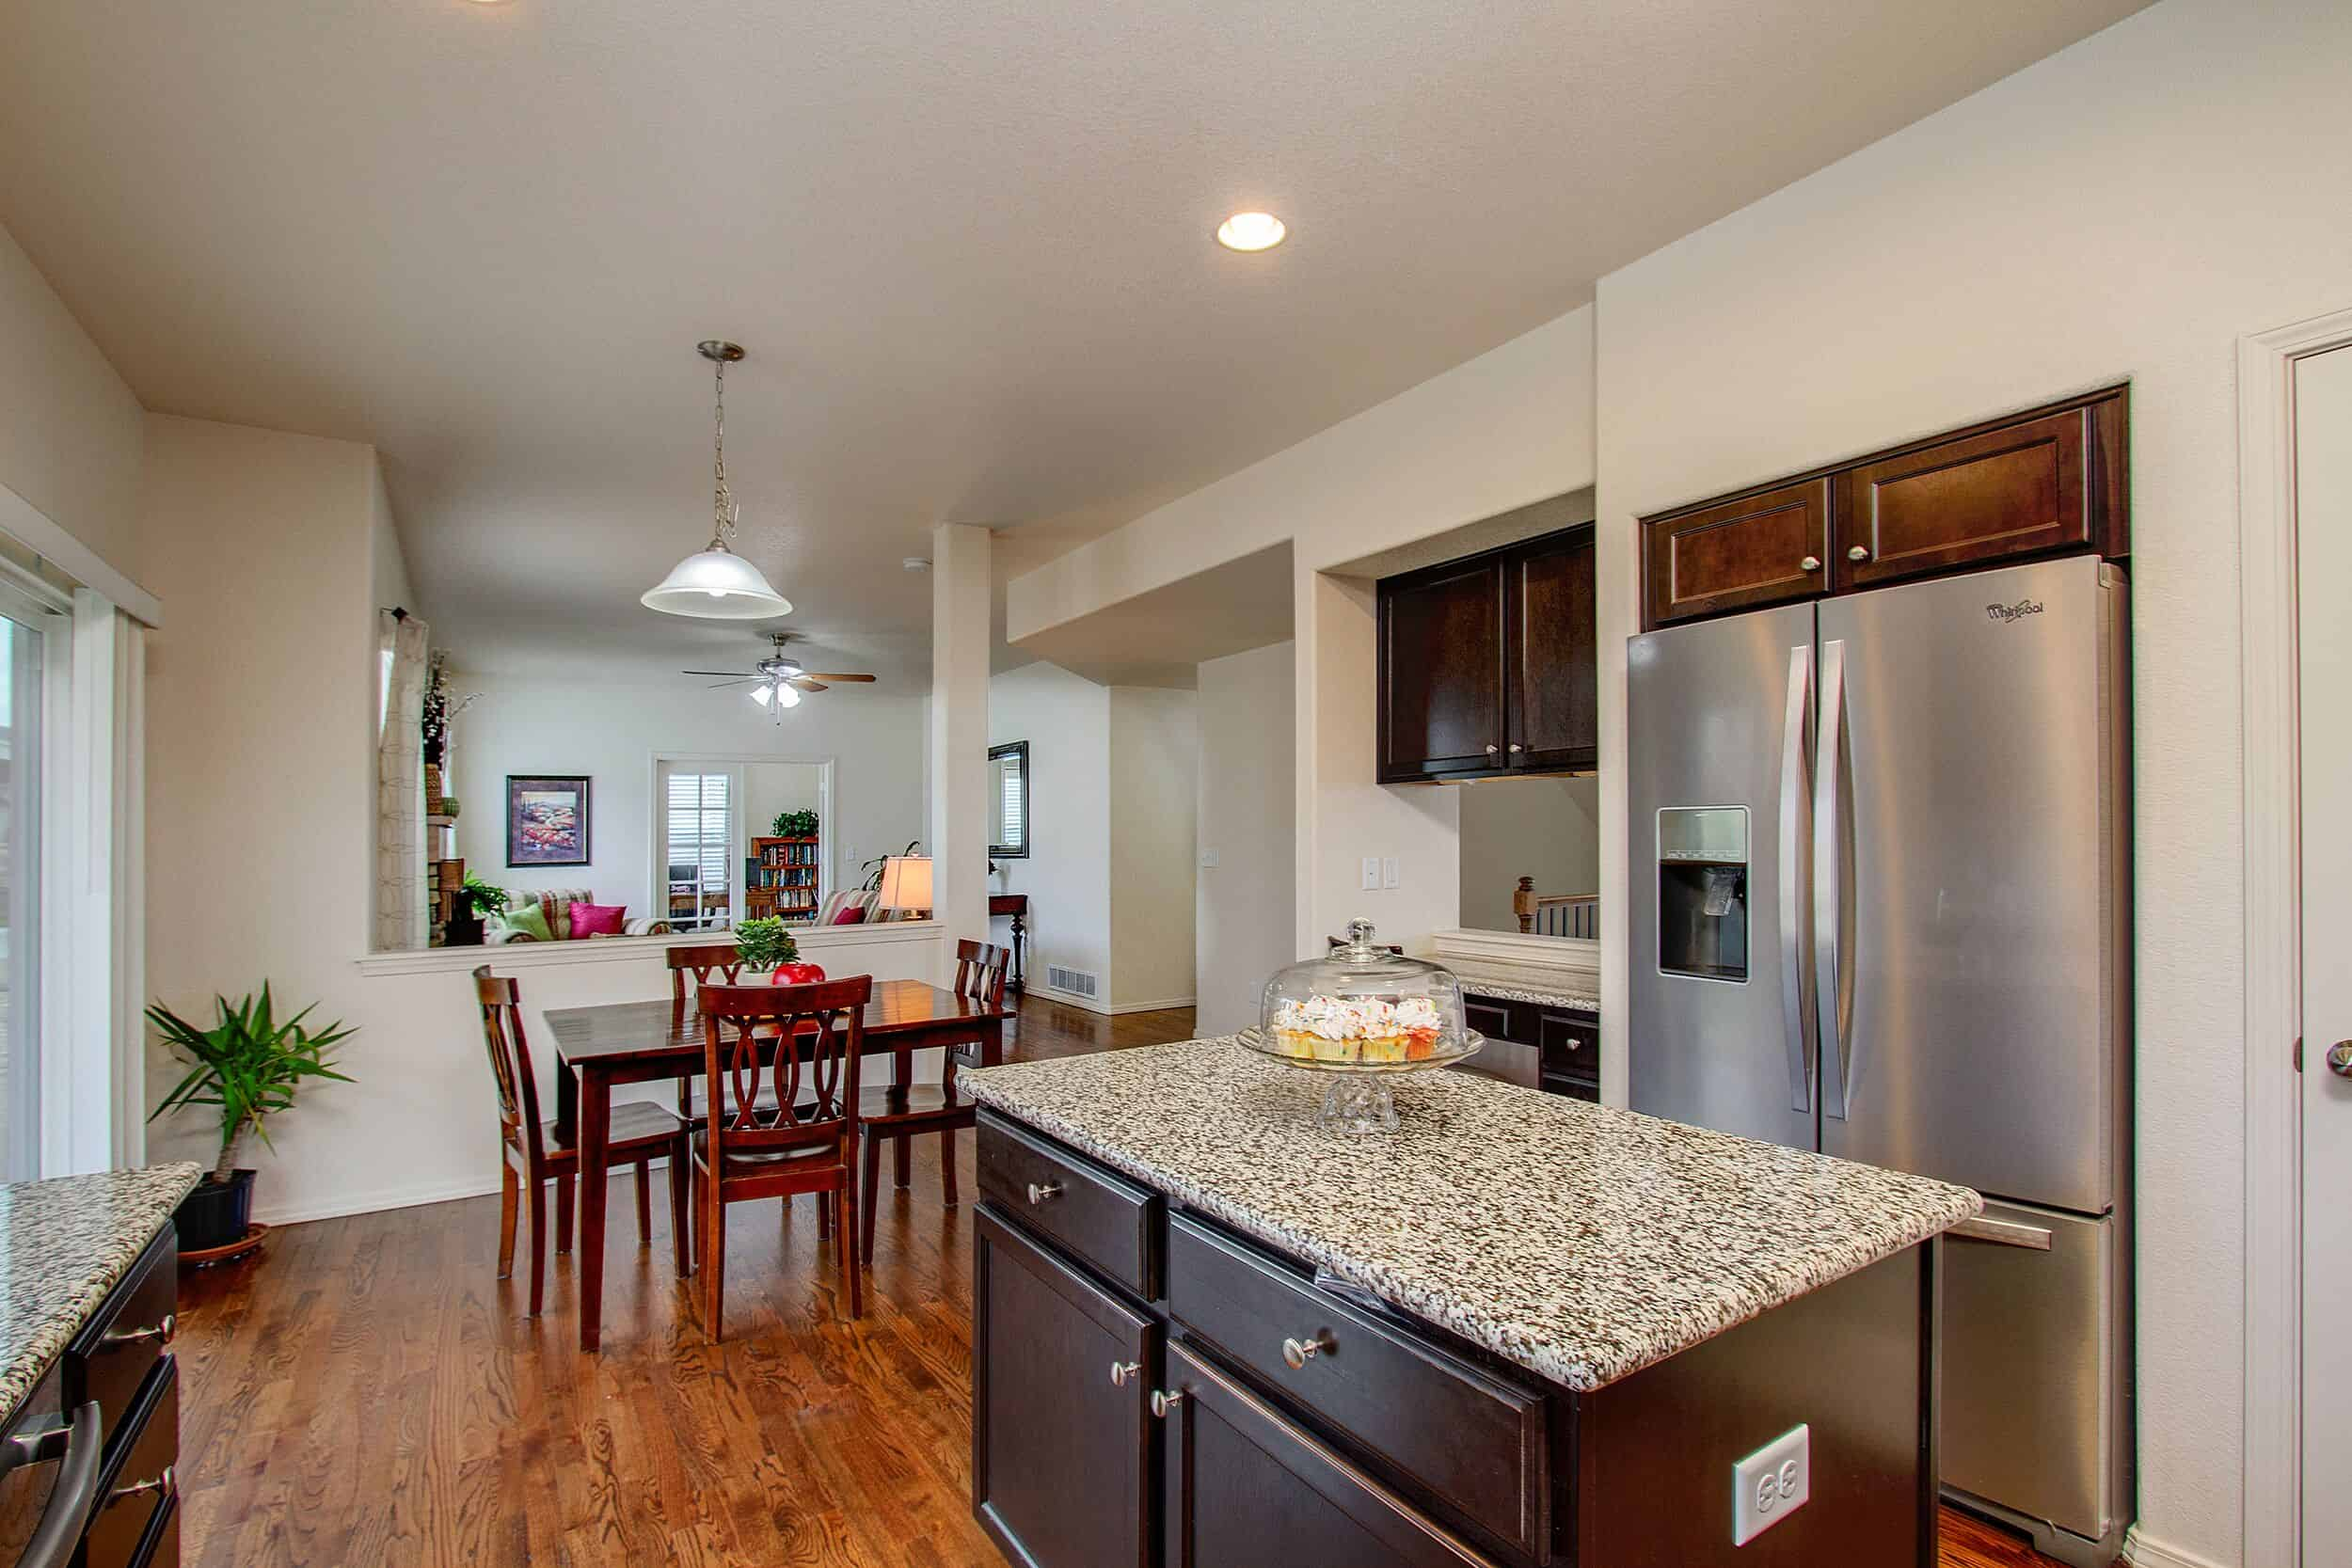 Kitchen, Nook, Family Room